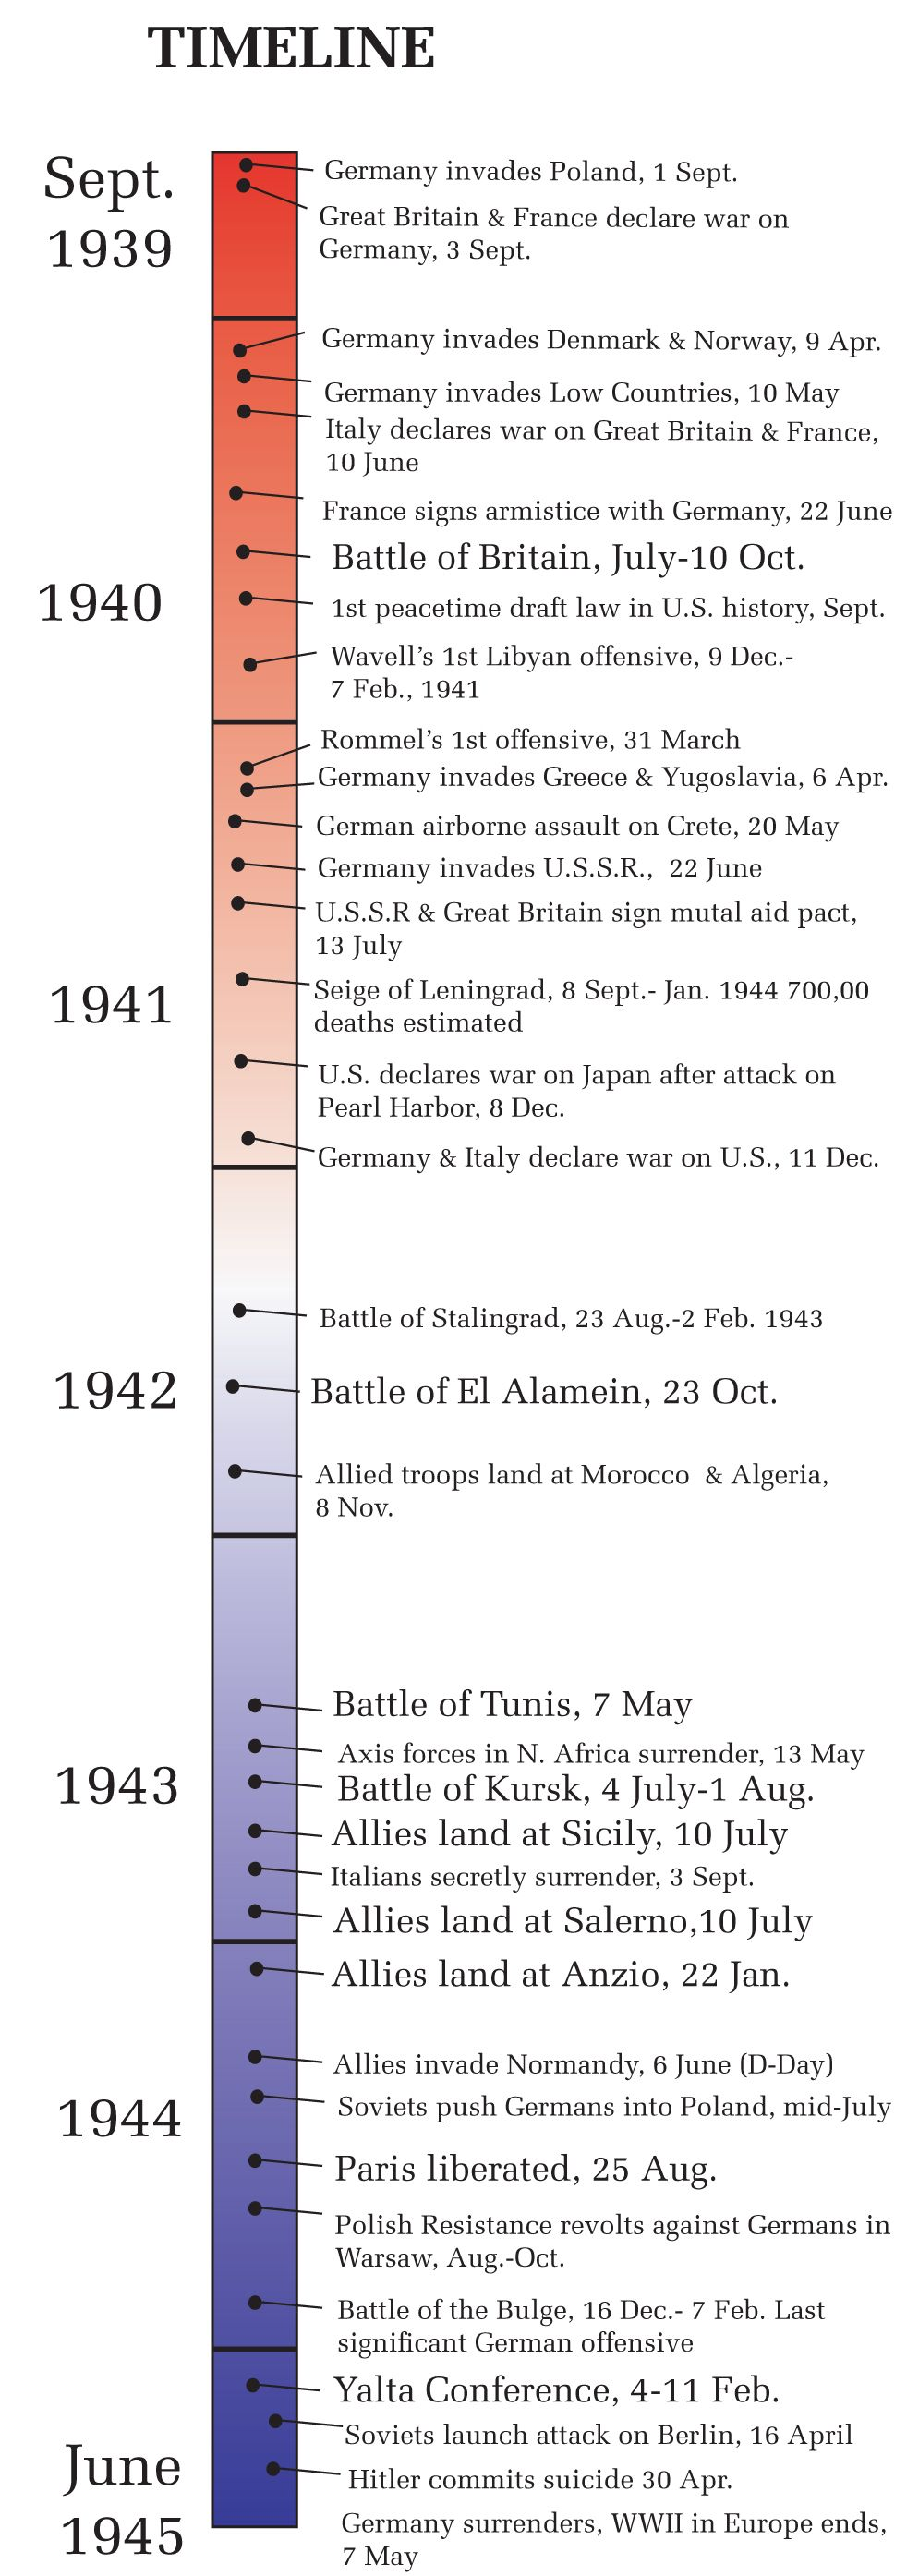 Timeline of World War II in Europe | History - 20th ...